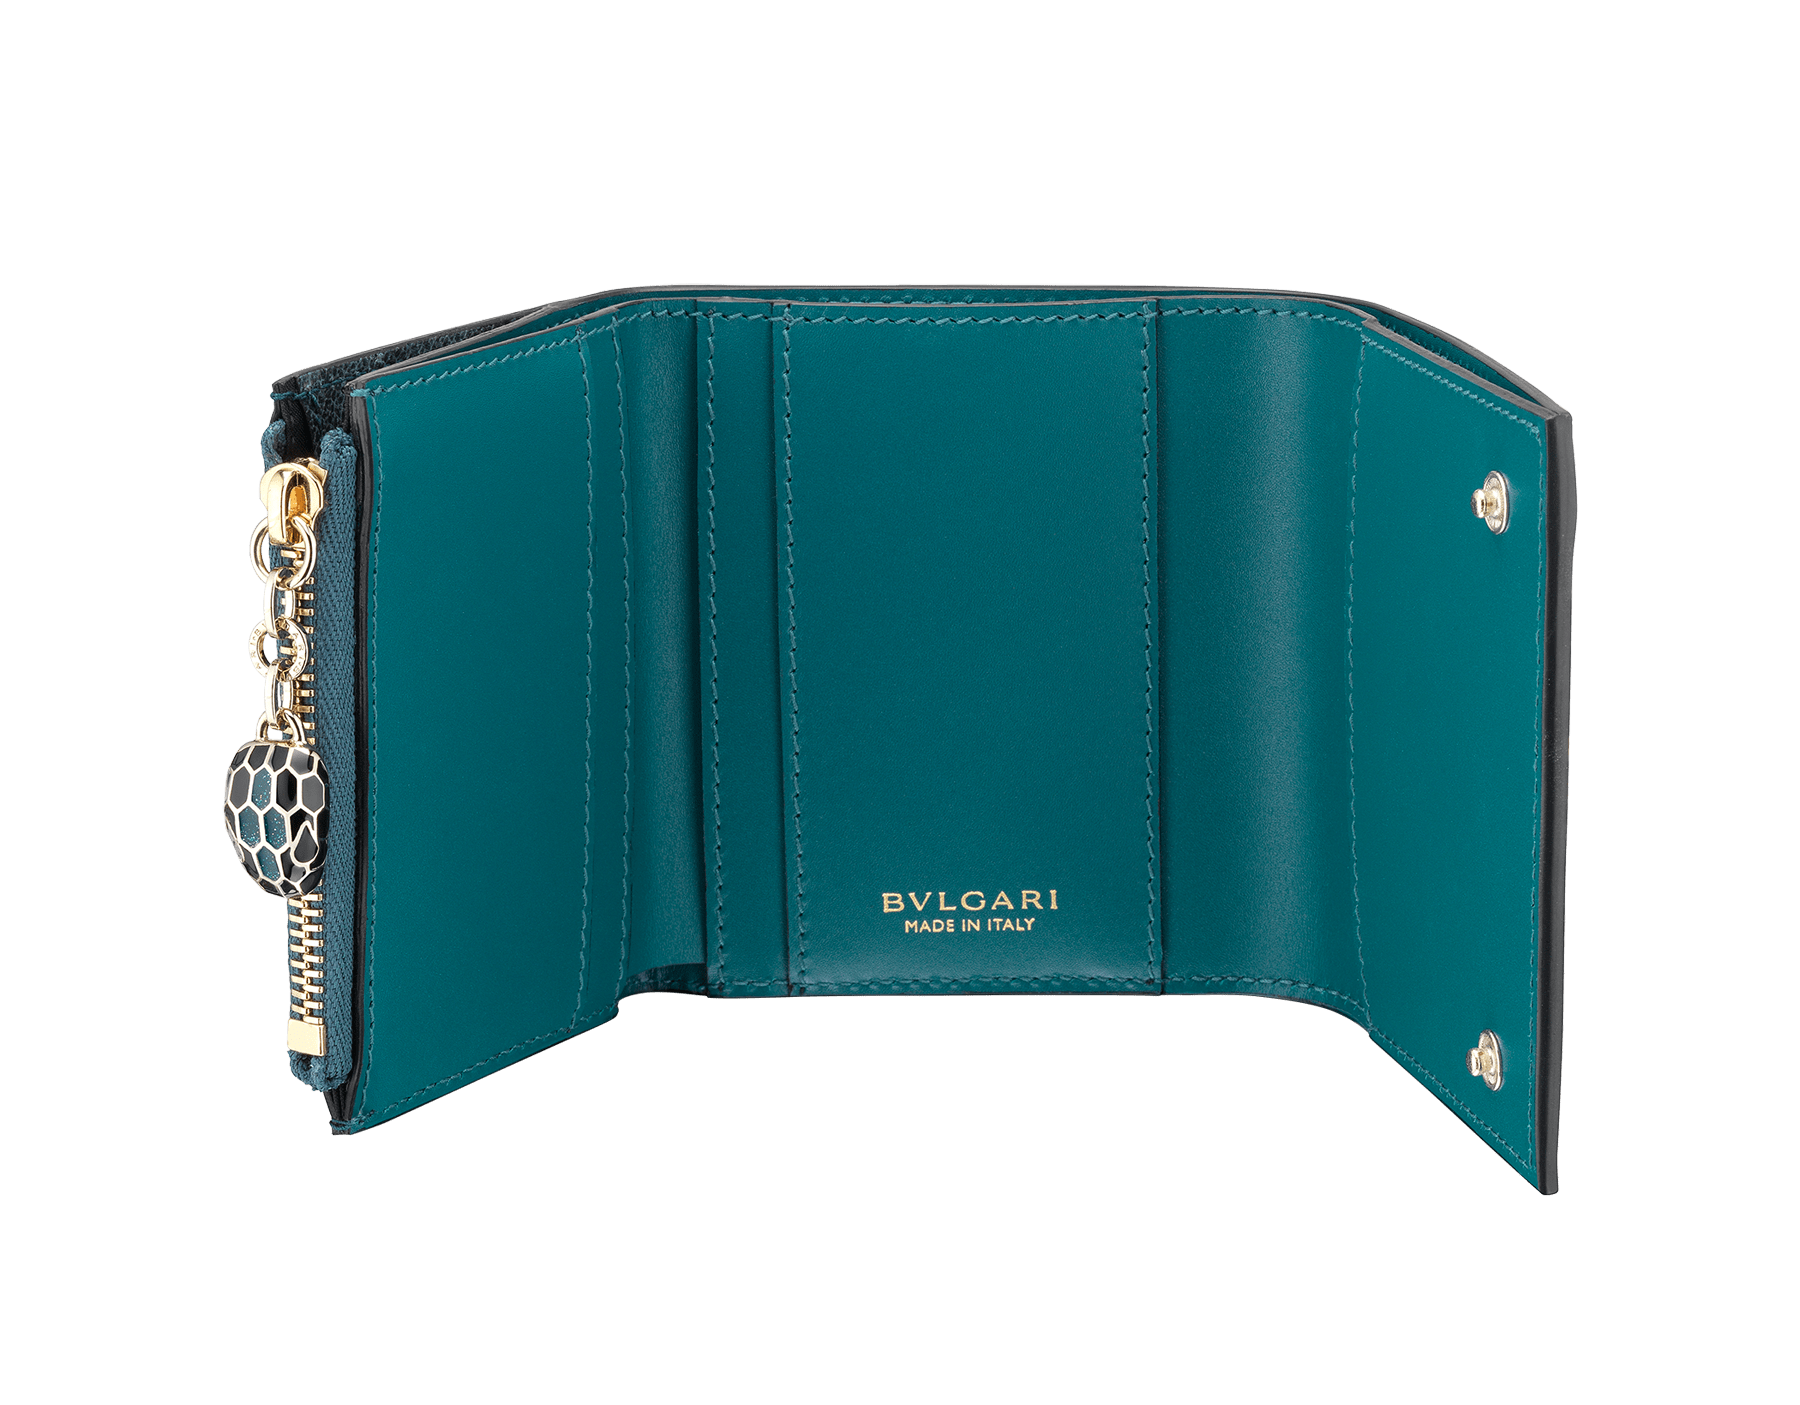 Serpenti Forever super compact wallet in milky opal metallic karung skin and milky opal calf leather. Iconic snakehead stud closure in black and glitter milky opal enamel, with black enamel eyes. SEA-SUPERCOMPACT-MK image 2